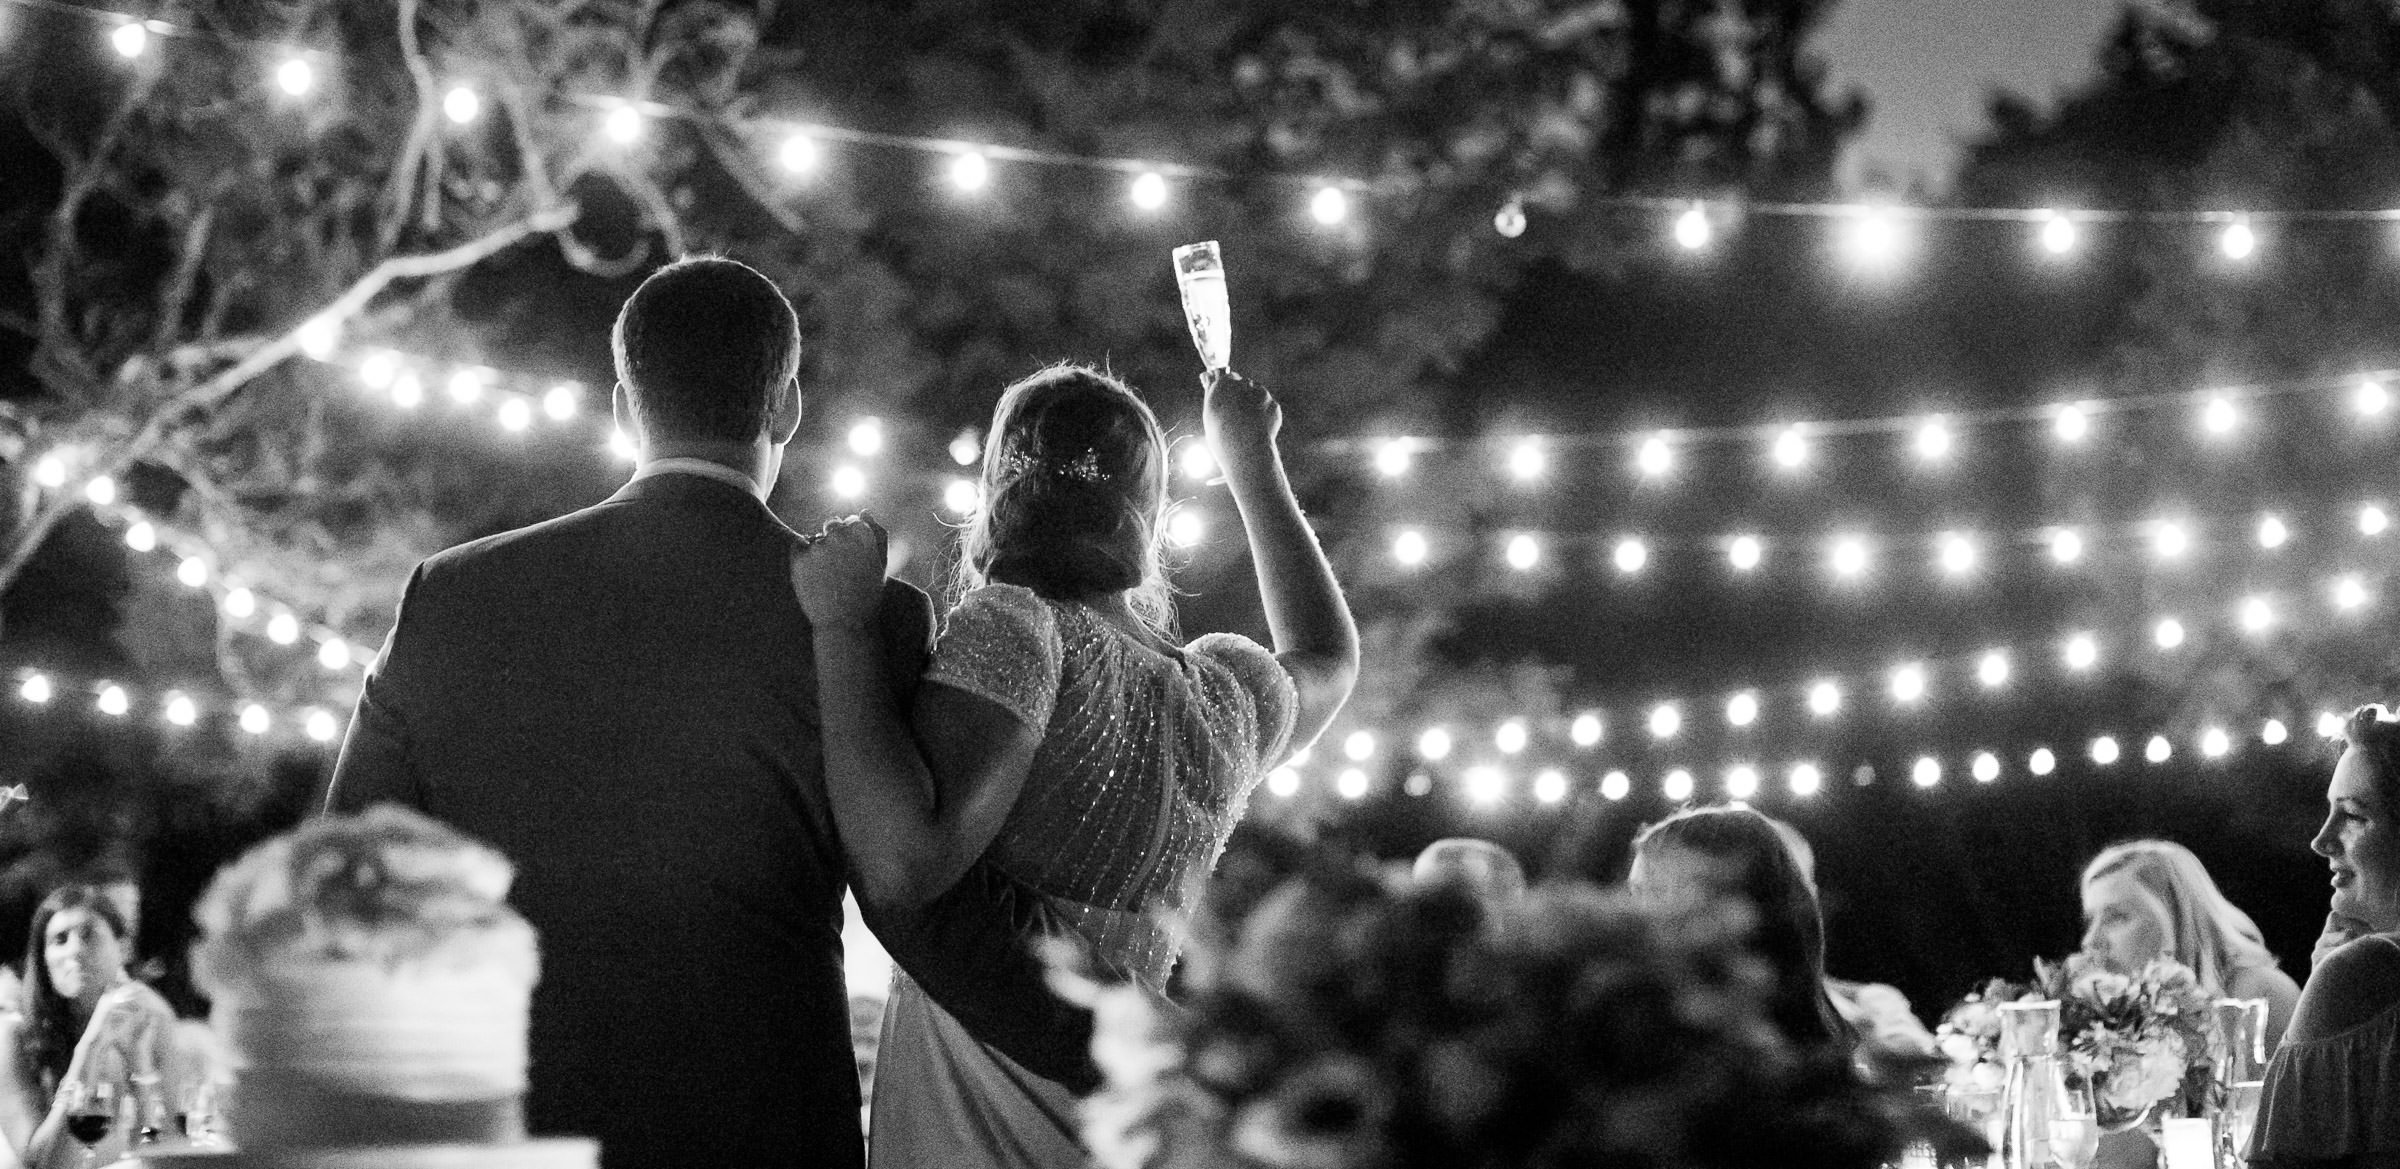 bride and groom toasting at night